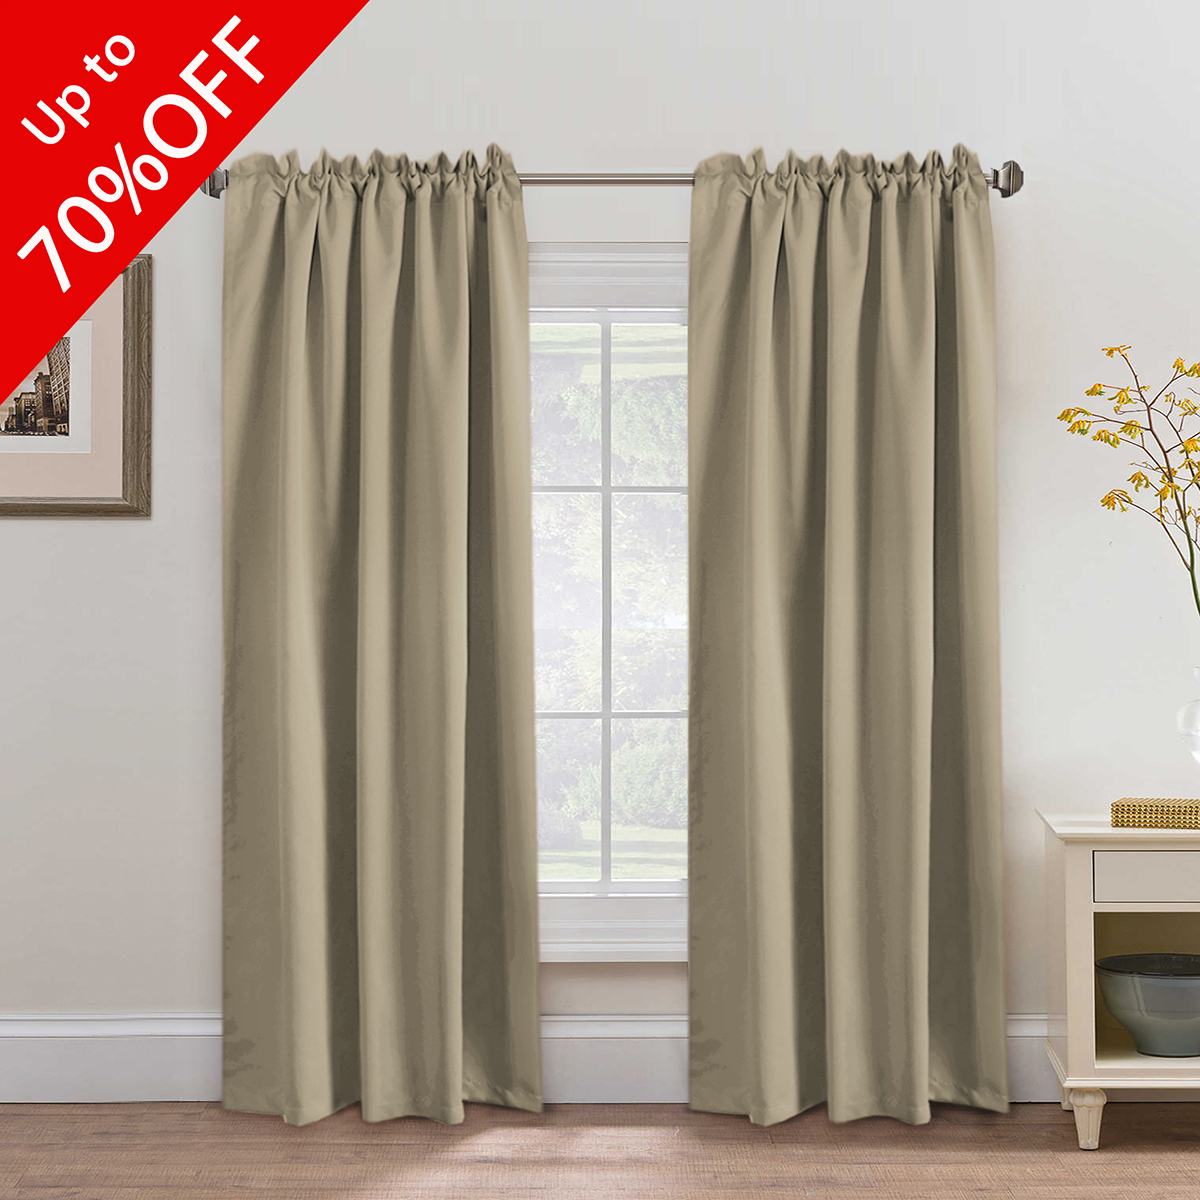 Product Image Premium Blackout Curtains 2 Panels, Thermal Insulated Back  Tab / Rod Pocket Panels For Baby